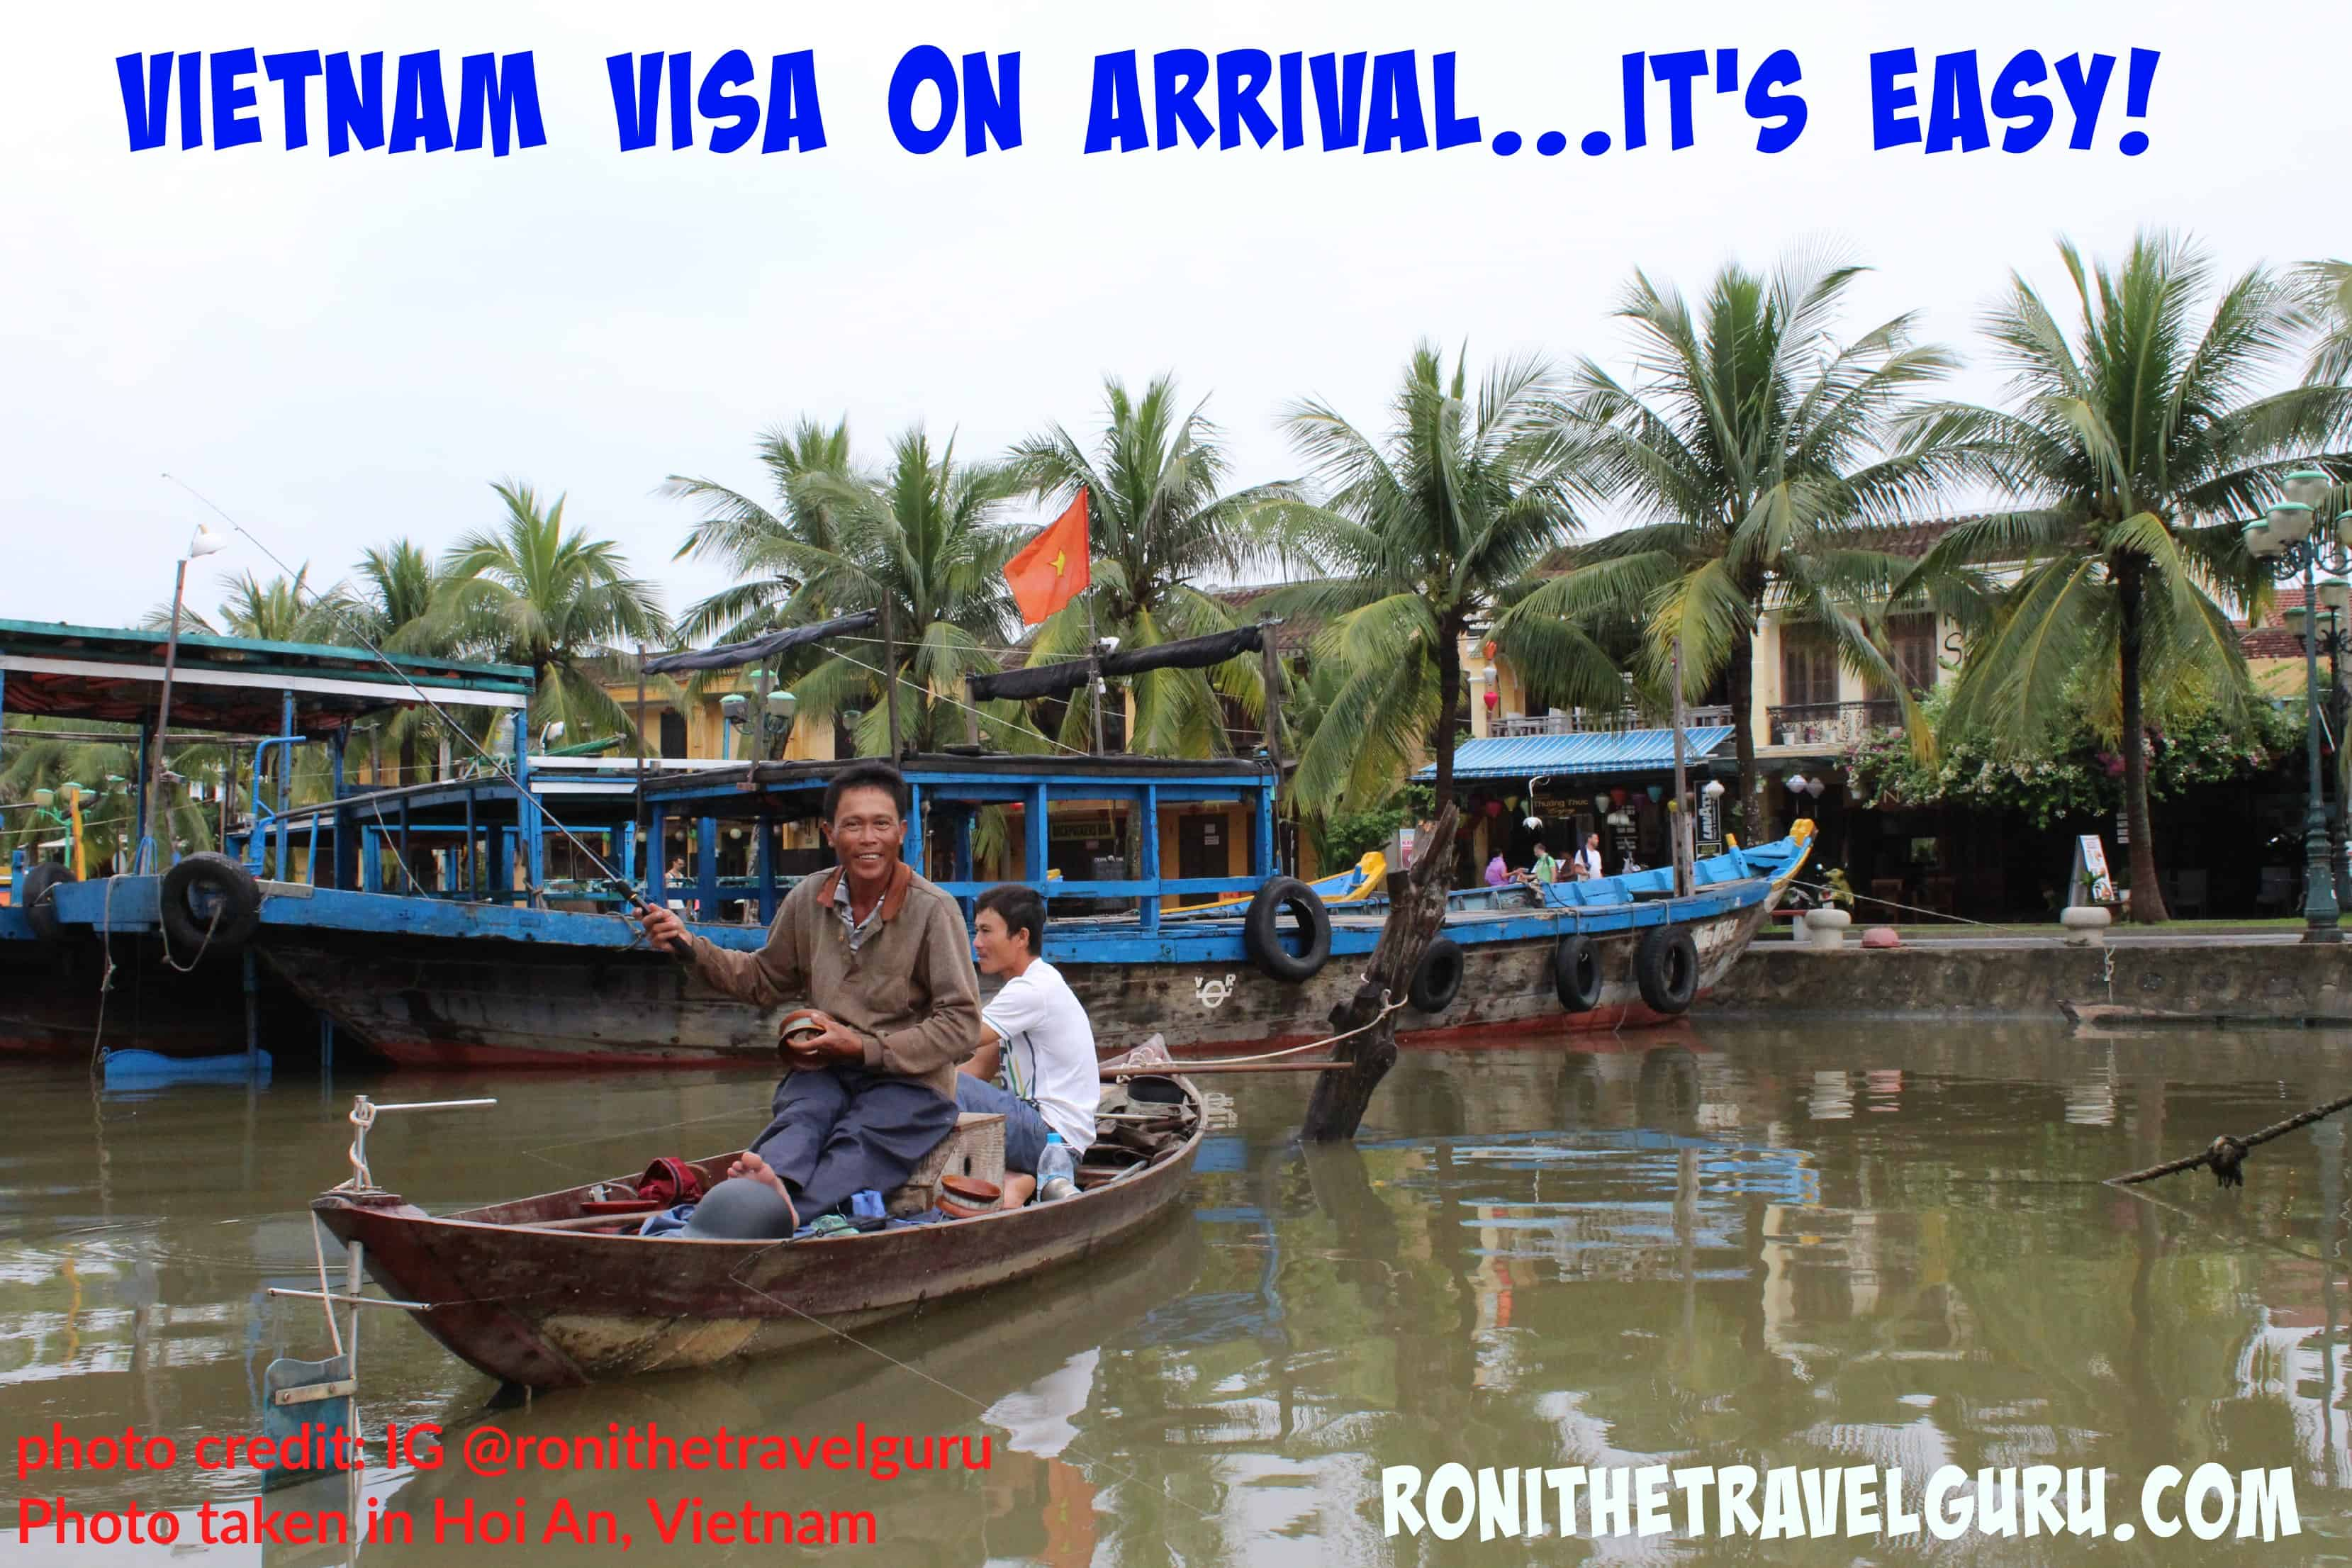 Do I need a visa to travel to Vietnam? Yes, and here's how you get it.